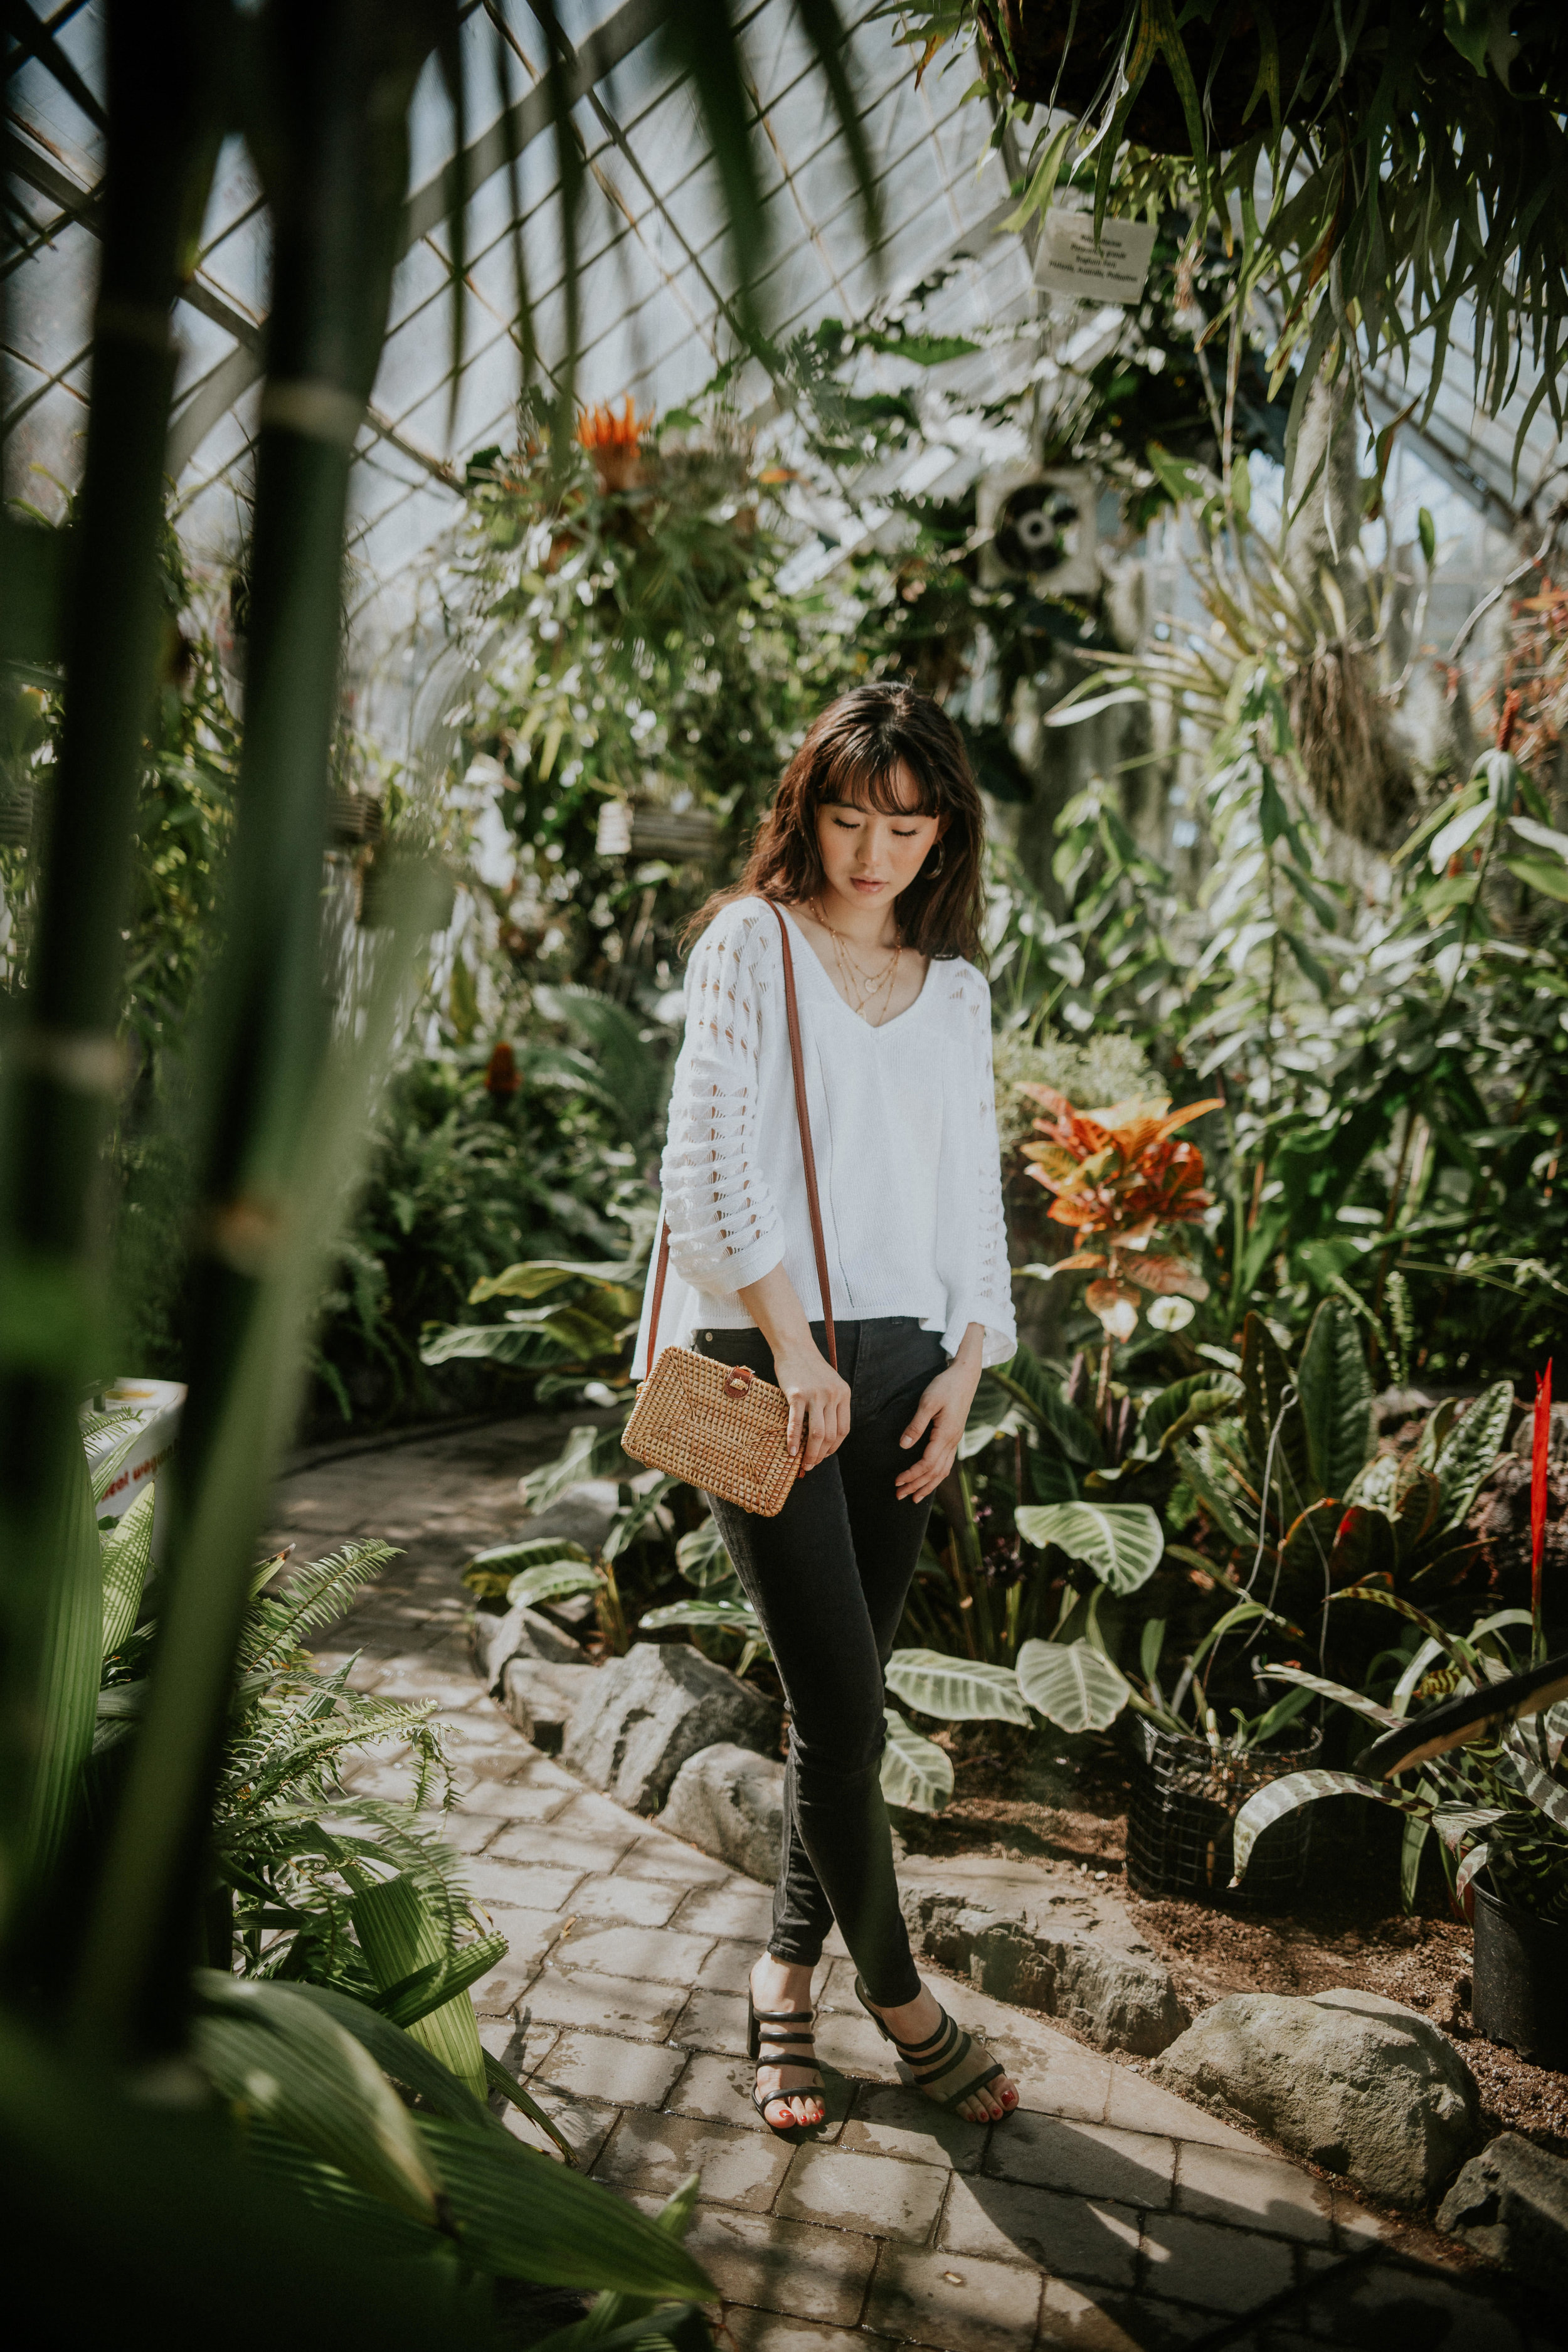 greenhouse fashion photography in austin texas